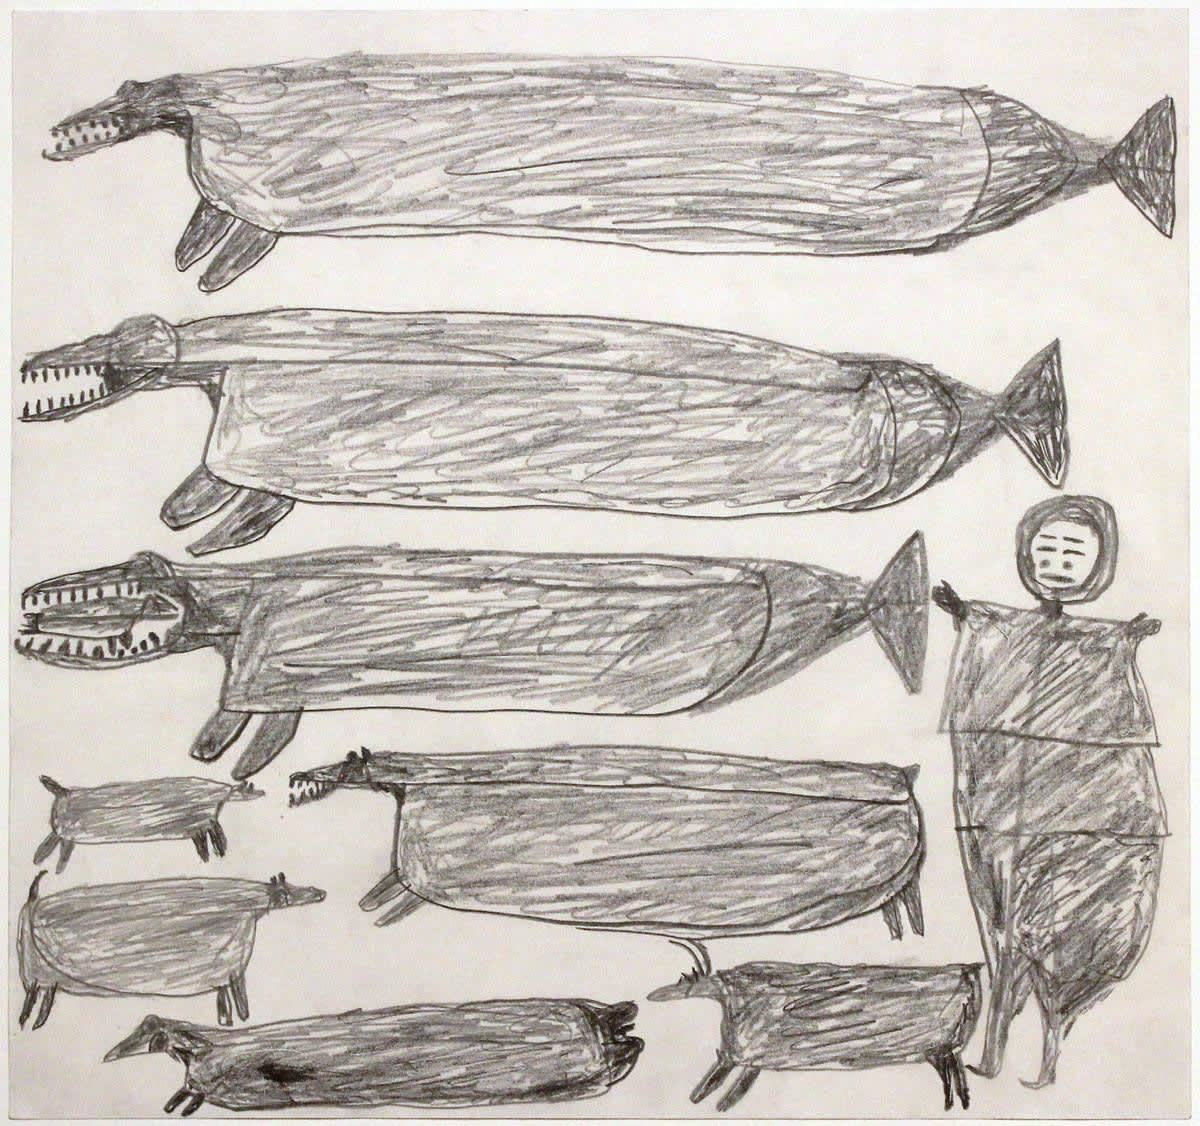 PARR (1893-1969) KINNGAIT (CAPE DORSET) Untitled (Hunter with Animals), c. 1962 graphite drawing, 17 x 18 in (43.2 x 45.7 cm) $7,500